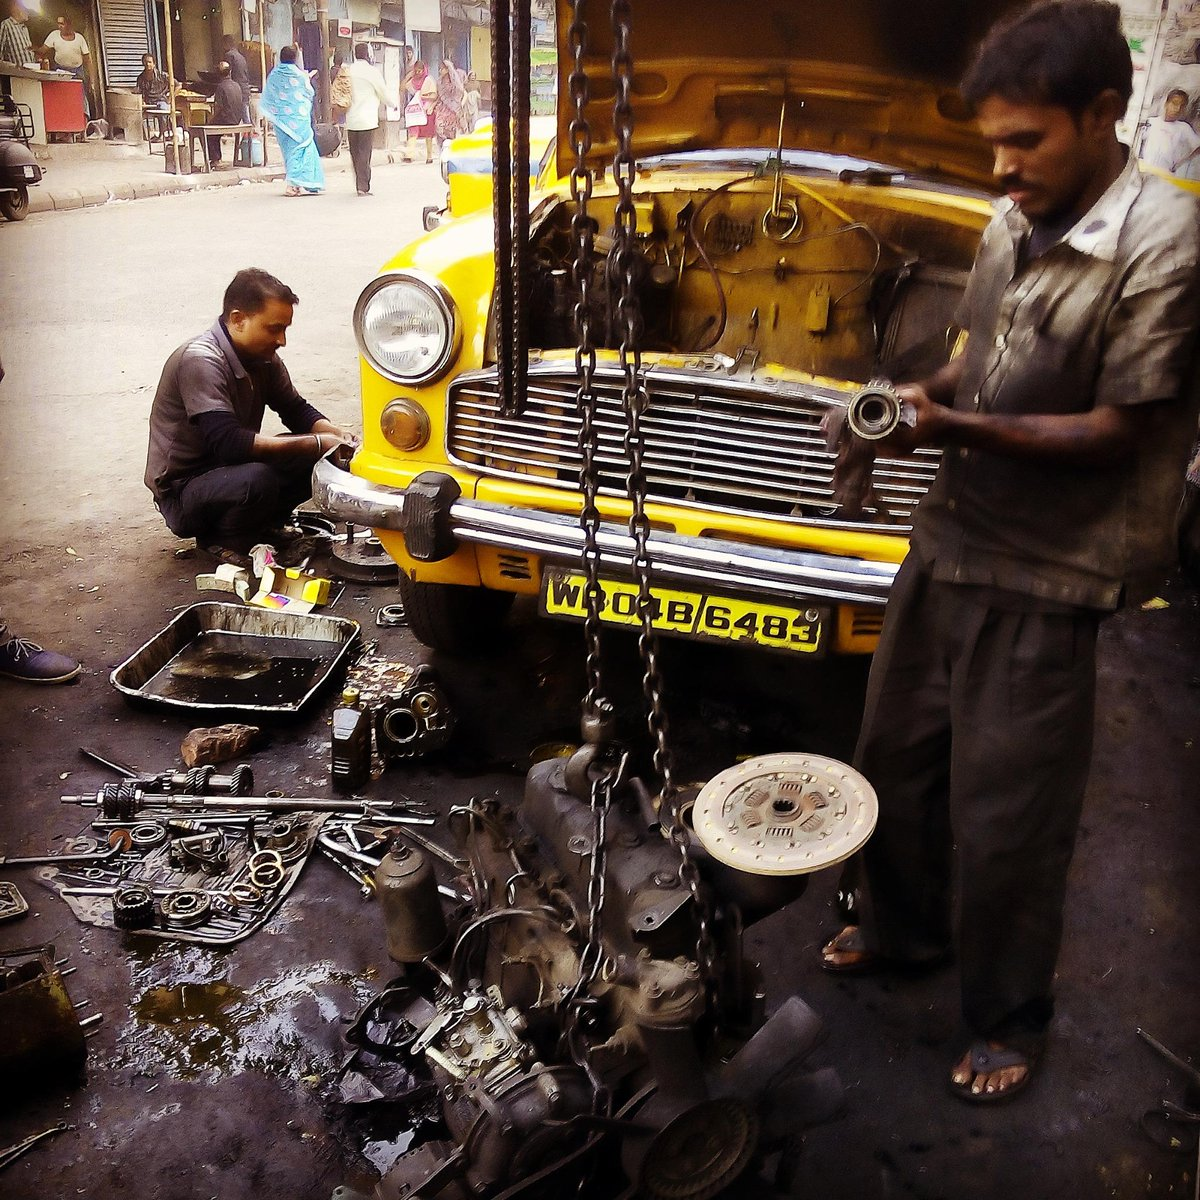 Complete gearbox strip down and repair on the street behind our office. #kolkata #jugaad http://t.co/jmrJstzOzI